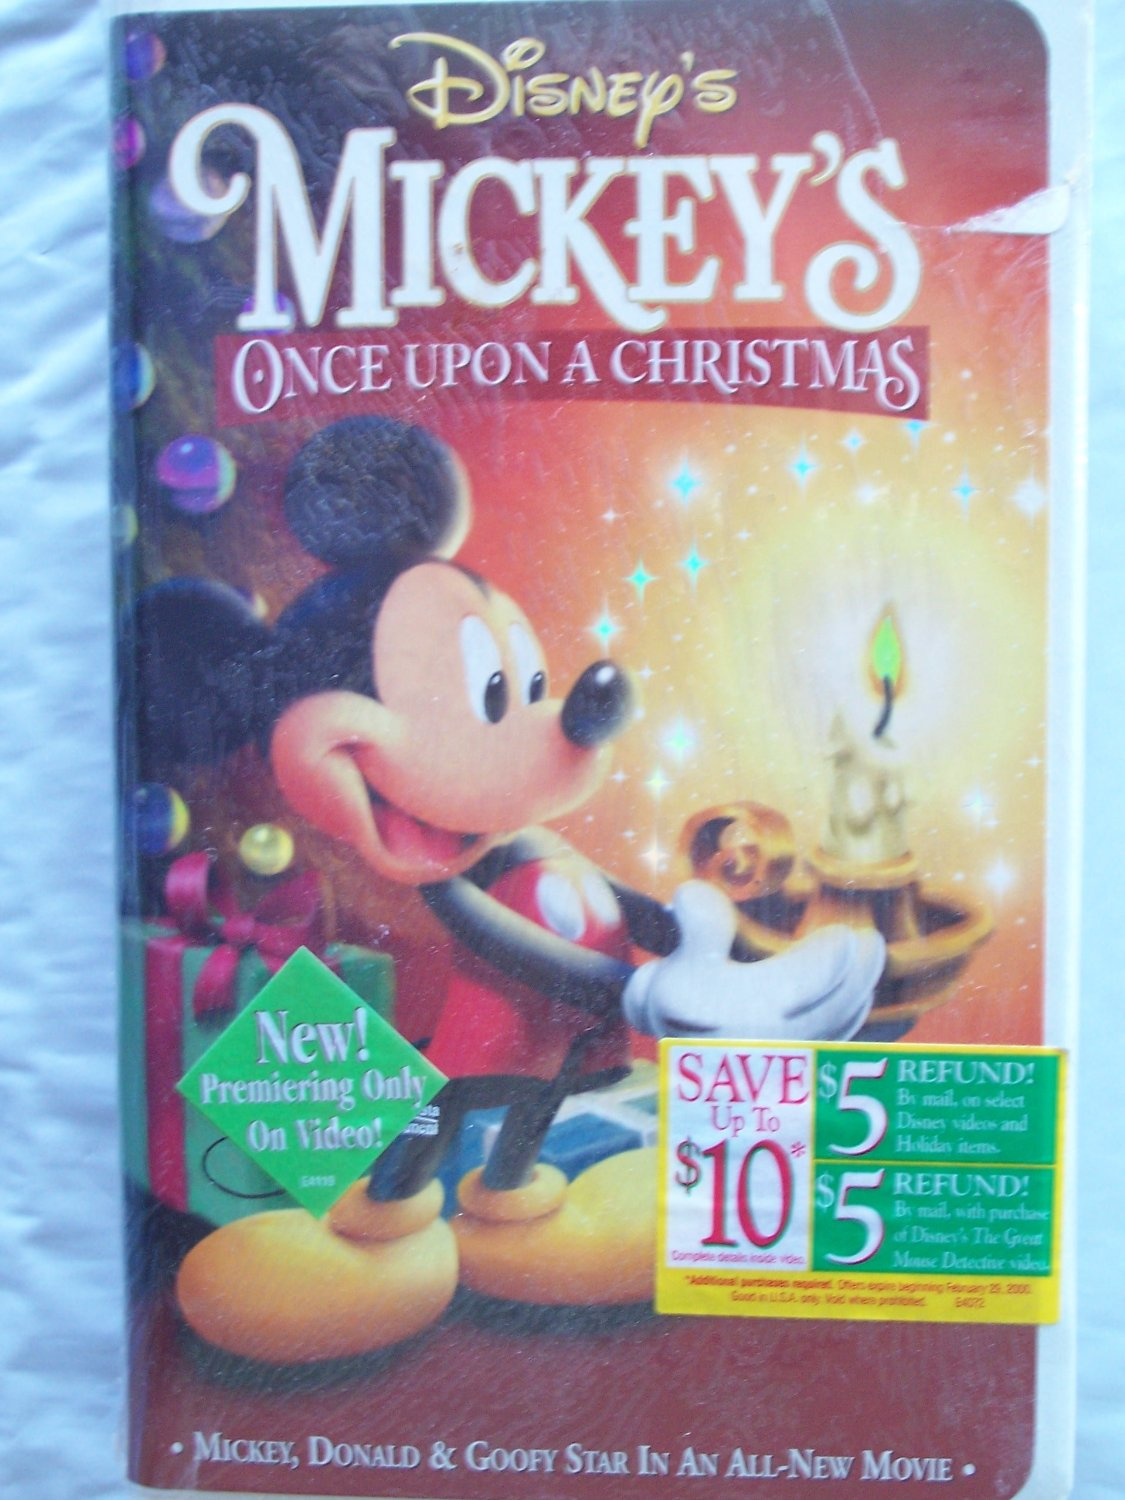 mickeys once upon a christmas the 1999 vhs paramount version coming to videocassette 91 r7uwrjbl sl1500 - Mickeys Once Upon A Christmas Vhs